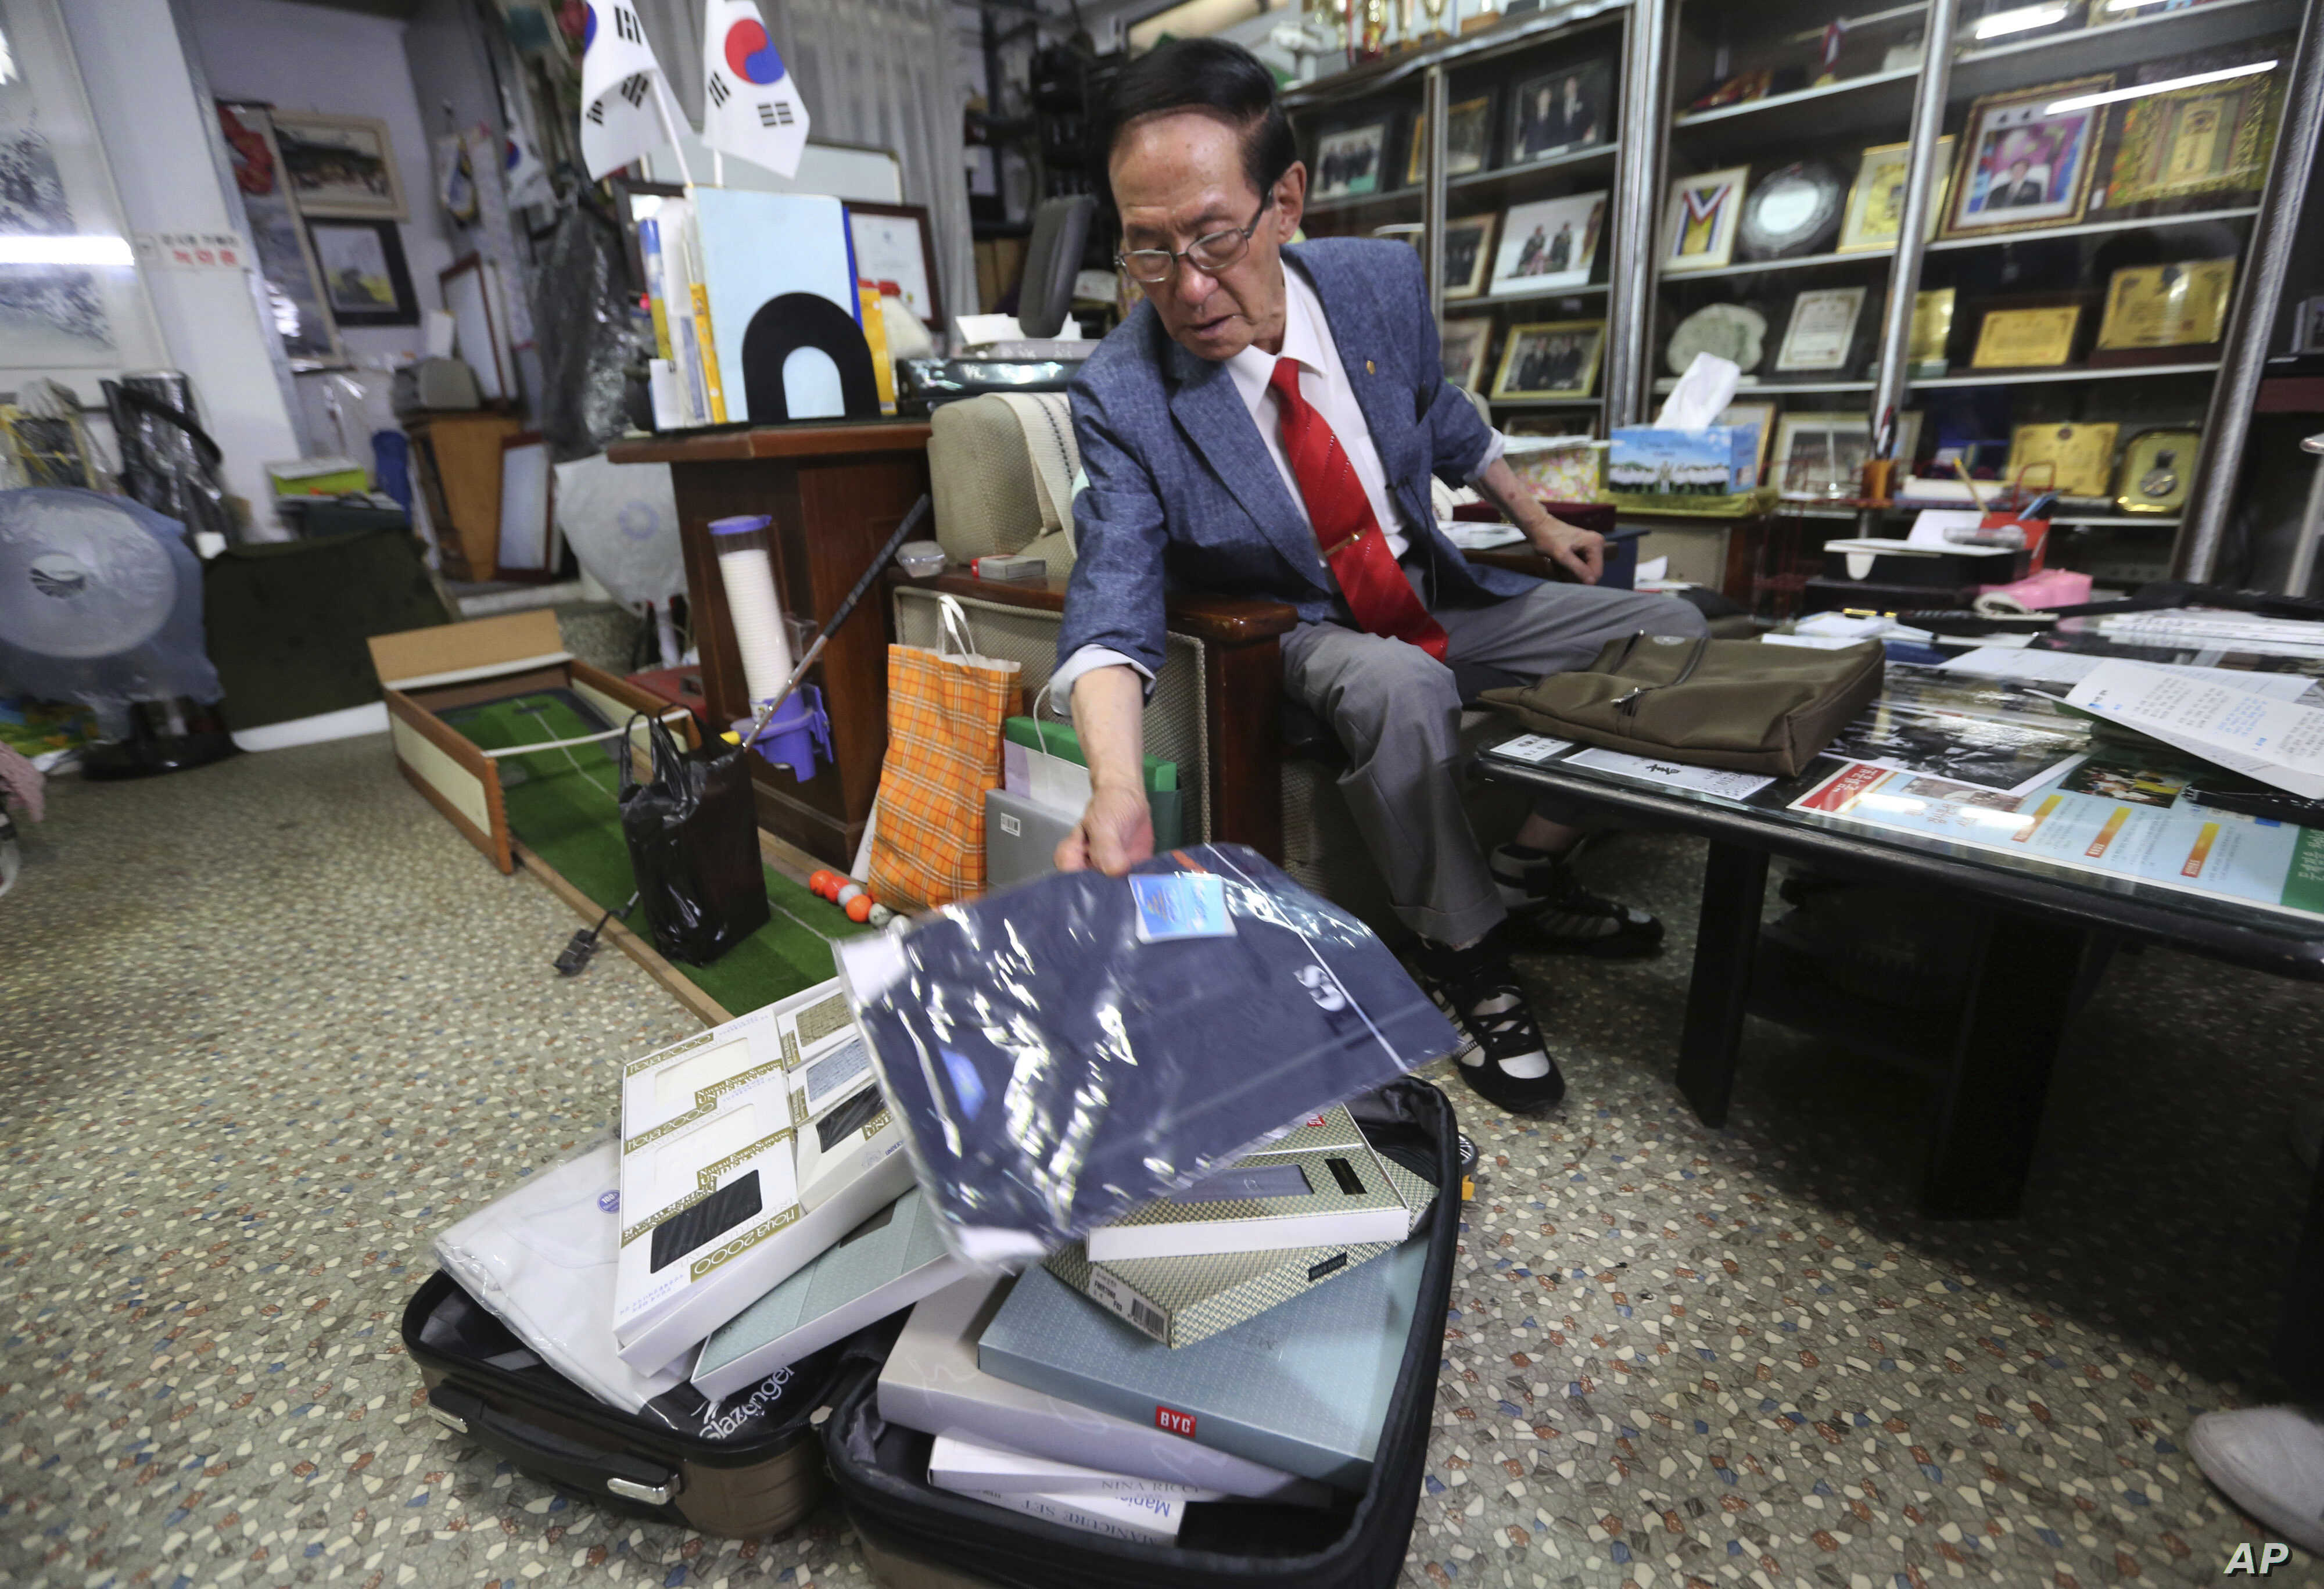 Yoon Heung-kyu, 91, shows some gifts for his family members in North Korea during an interview at his office in Seoul, South Korea, Aug. 16, 2018. Yoon will travel to North Korea Monday with other South Koreans to see family members they haven't s...